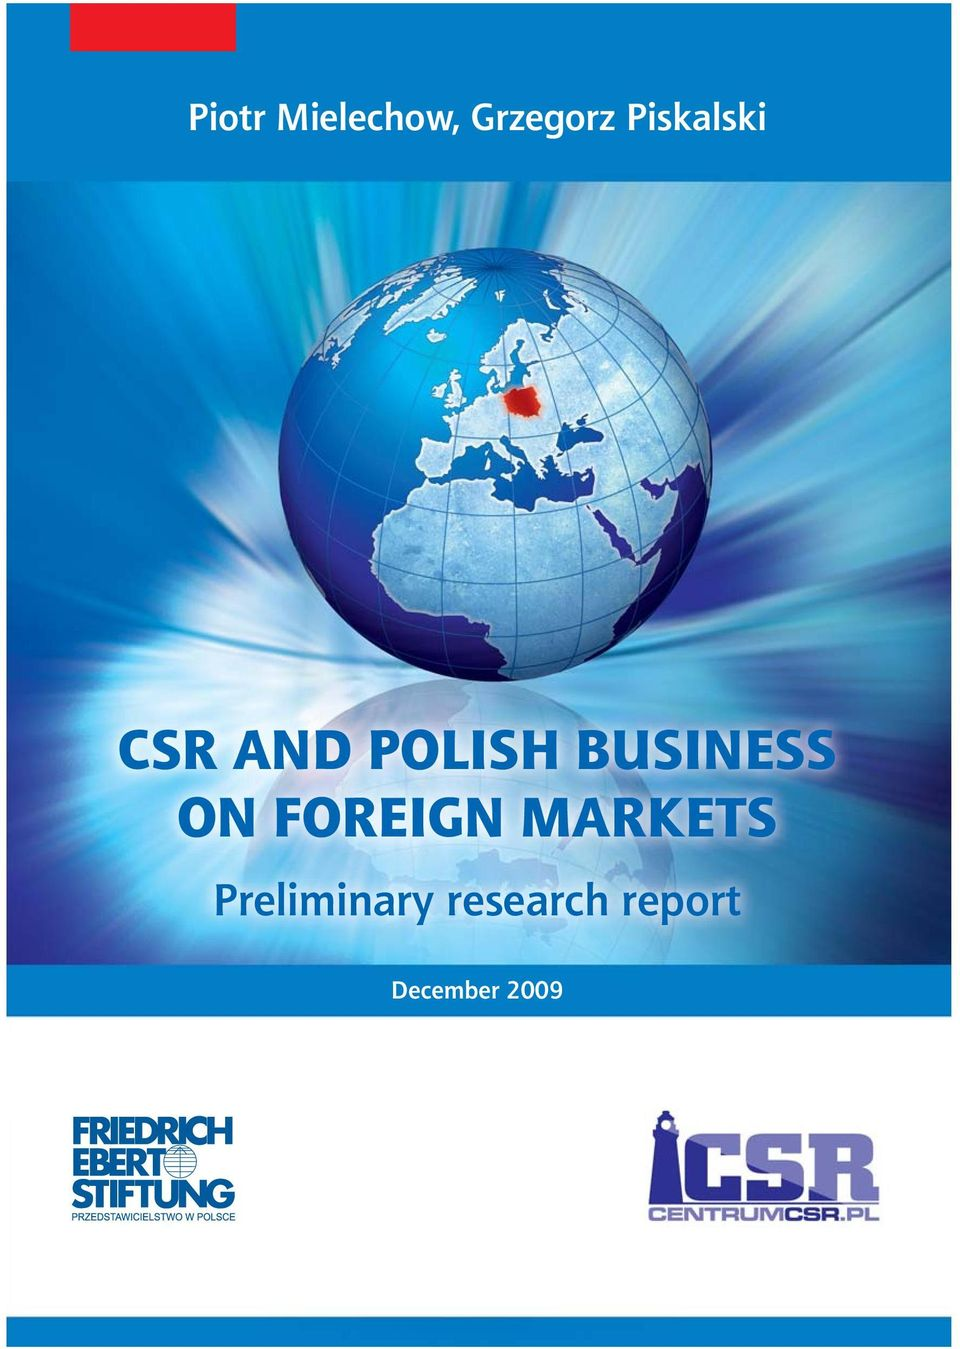 BUSINESS ON FOREIGN MARKETS